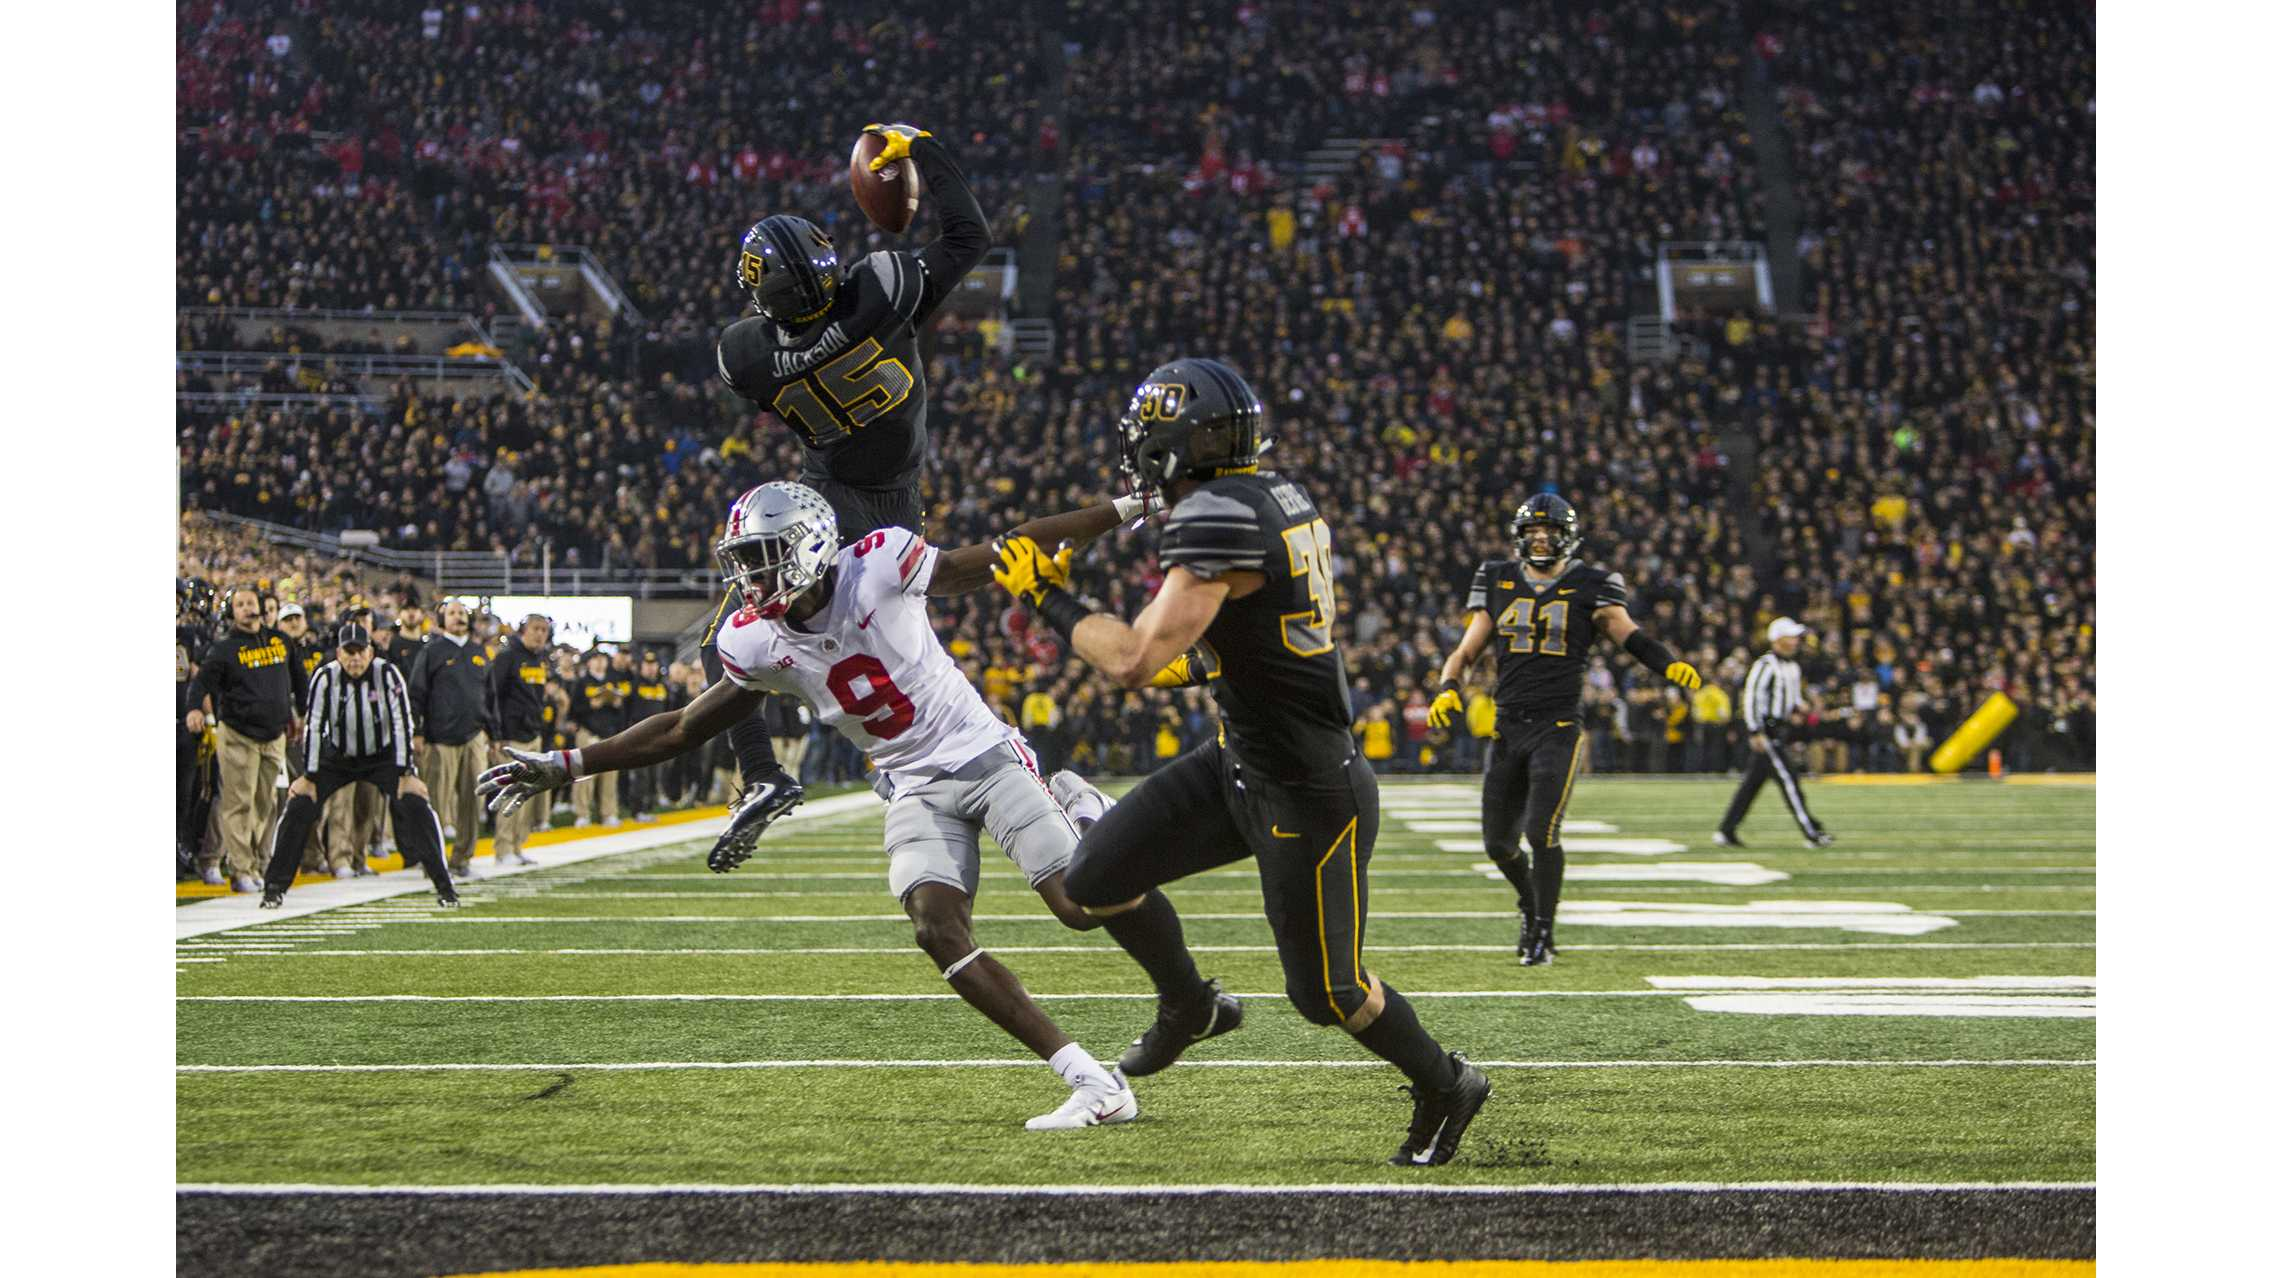 The Daily Iowan's Top Athletes of the year